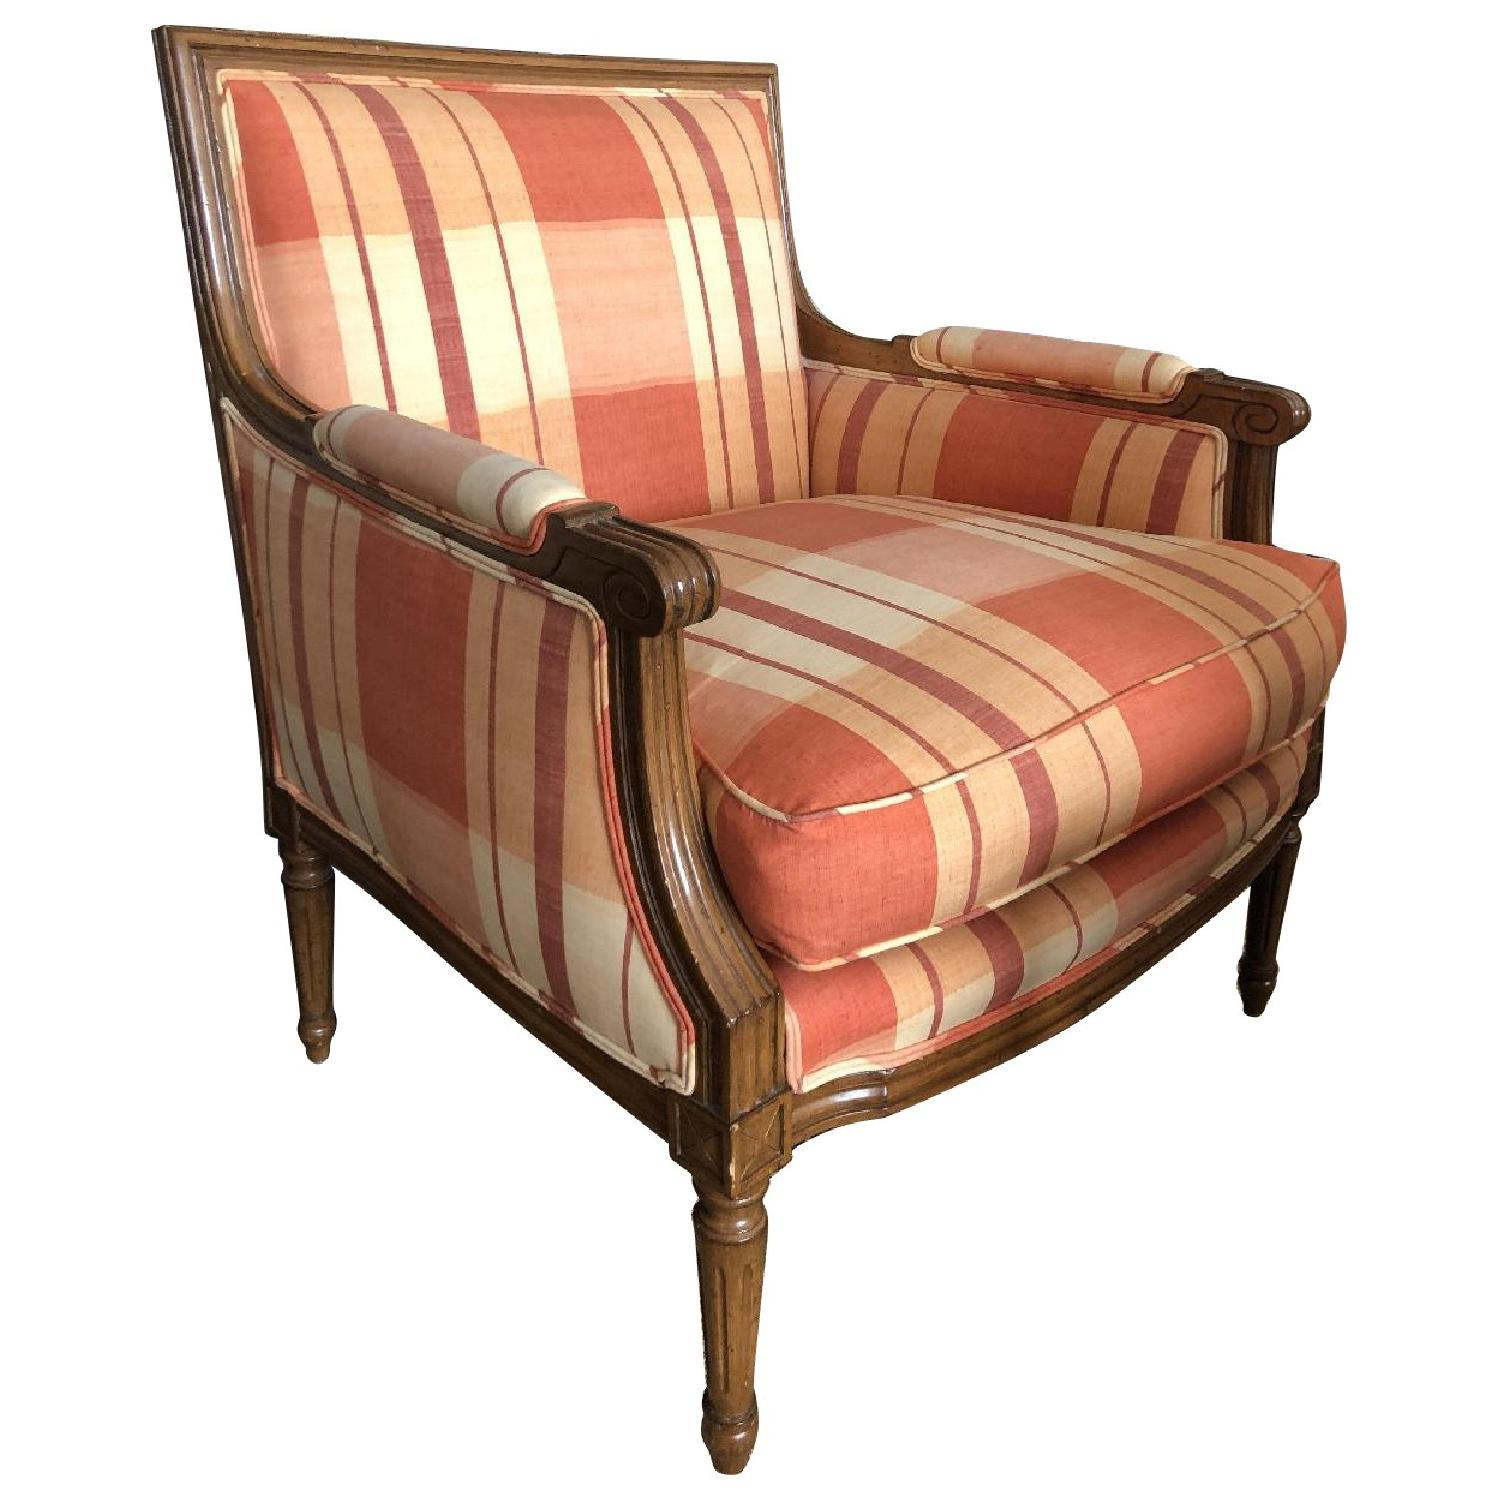 Sunset Bergere Chairs - image-0